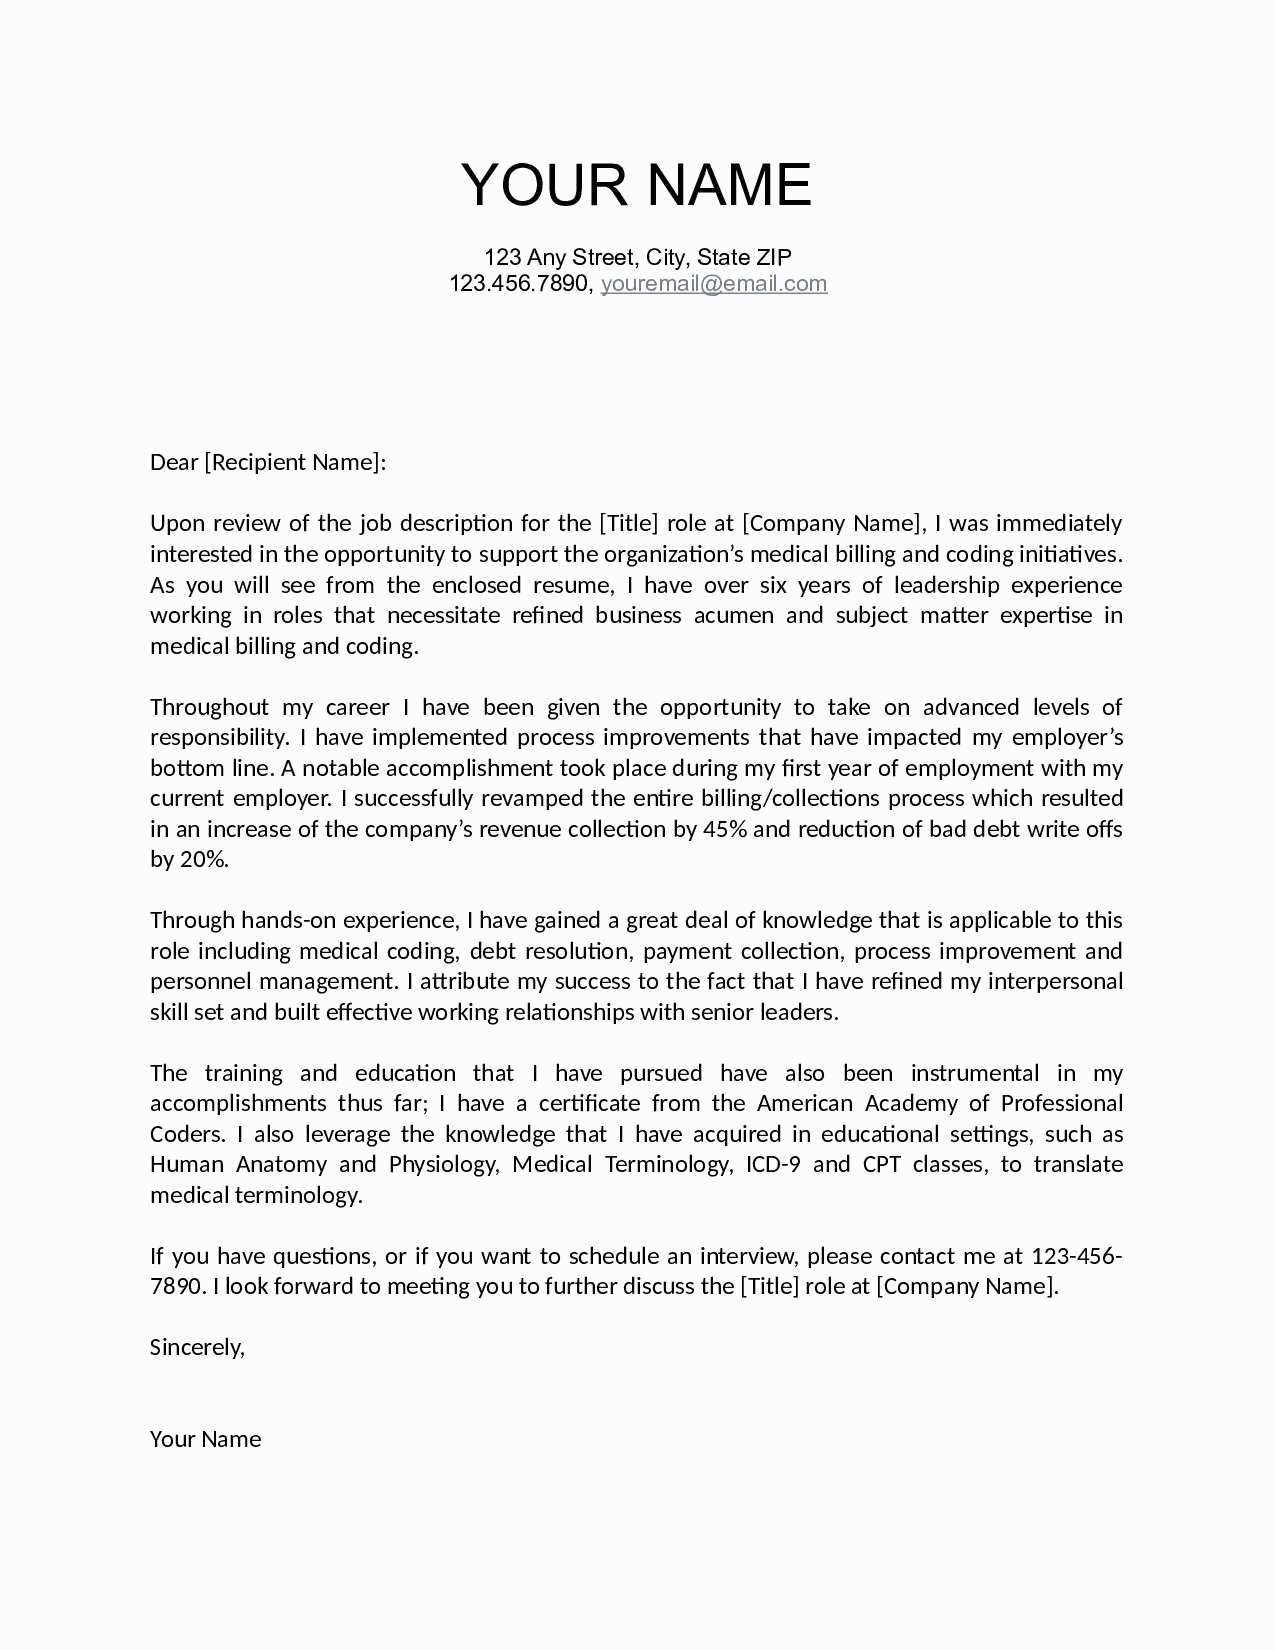 Letter Of Collaboration Template - Cover Letter for Teaching Job Valid Job Fer Letter Template Us Copy